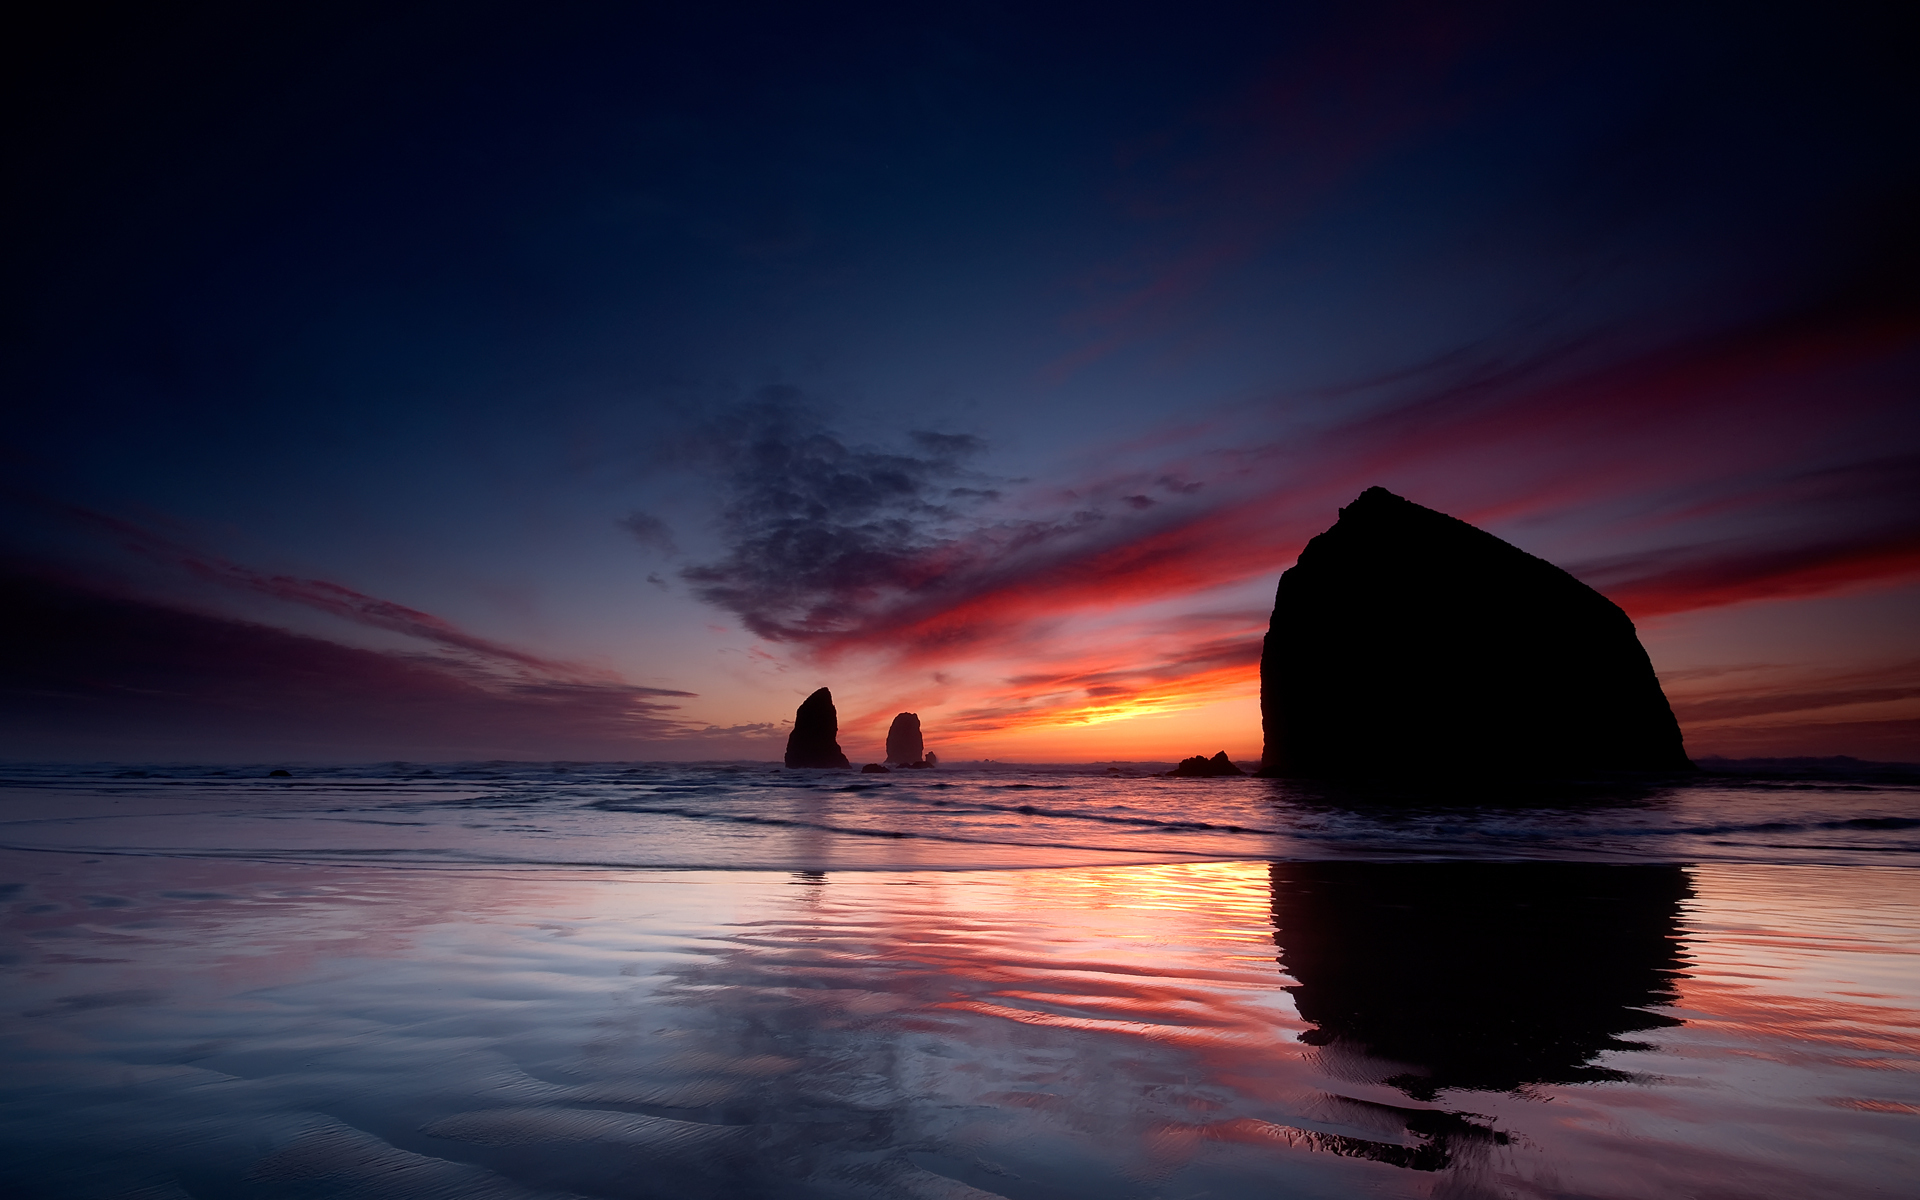 Moonset - Cannon Beach, OR.